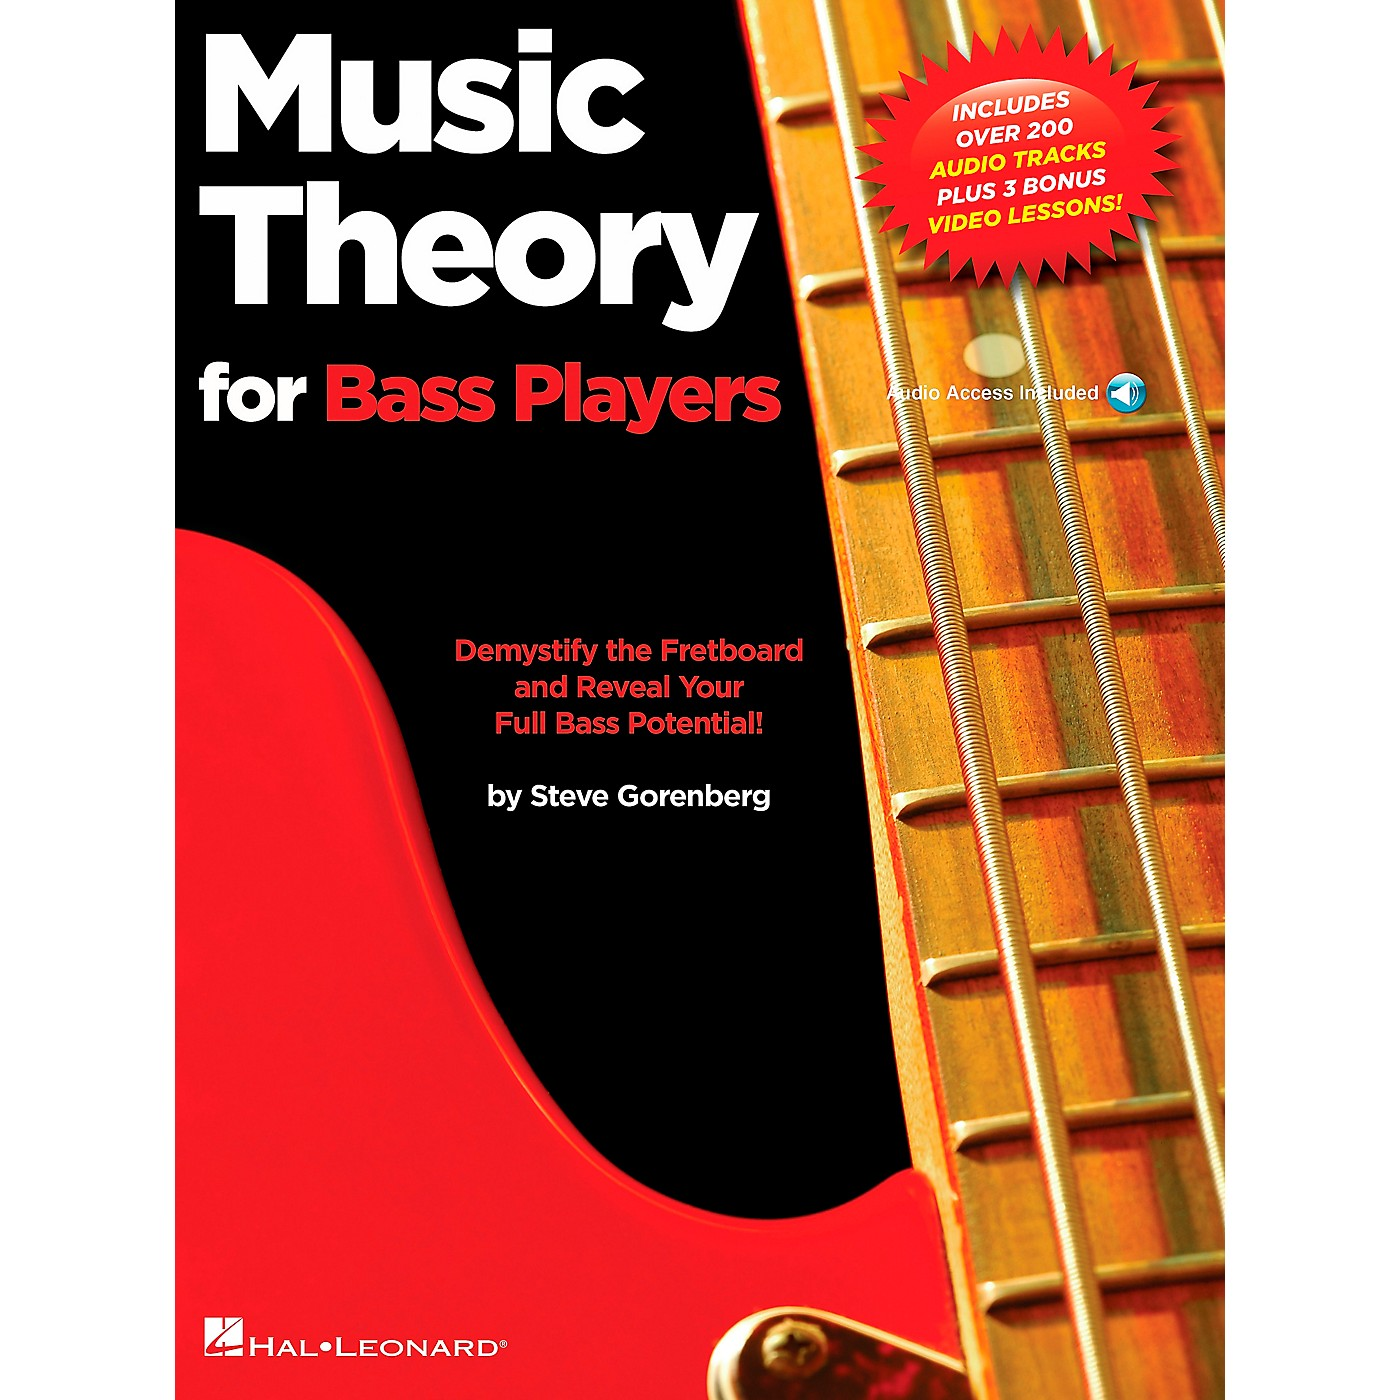 Hal Leonard Music Theory for Bass Players - Demystify the Fretboard and Reveal Your Full Bass Potential! thumbnail